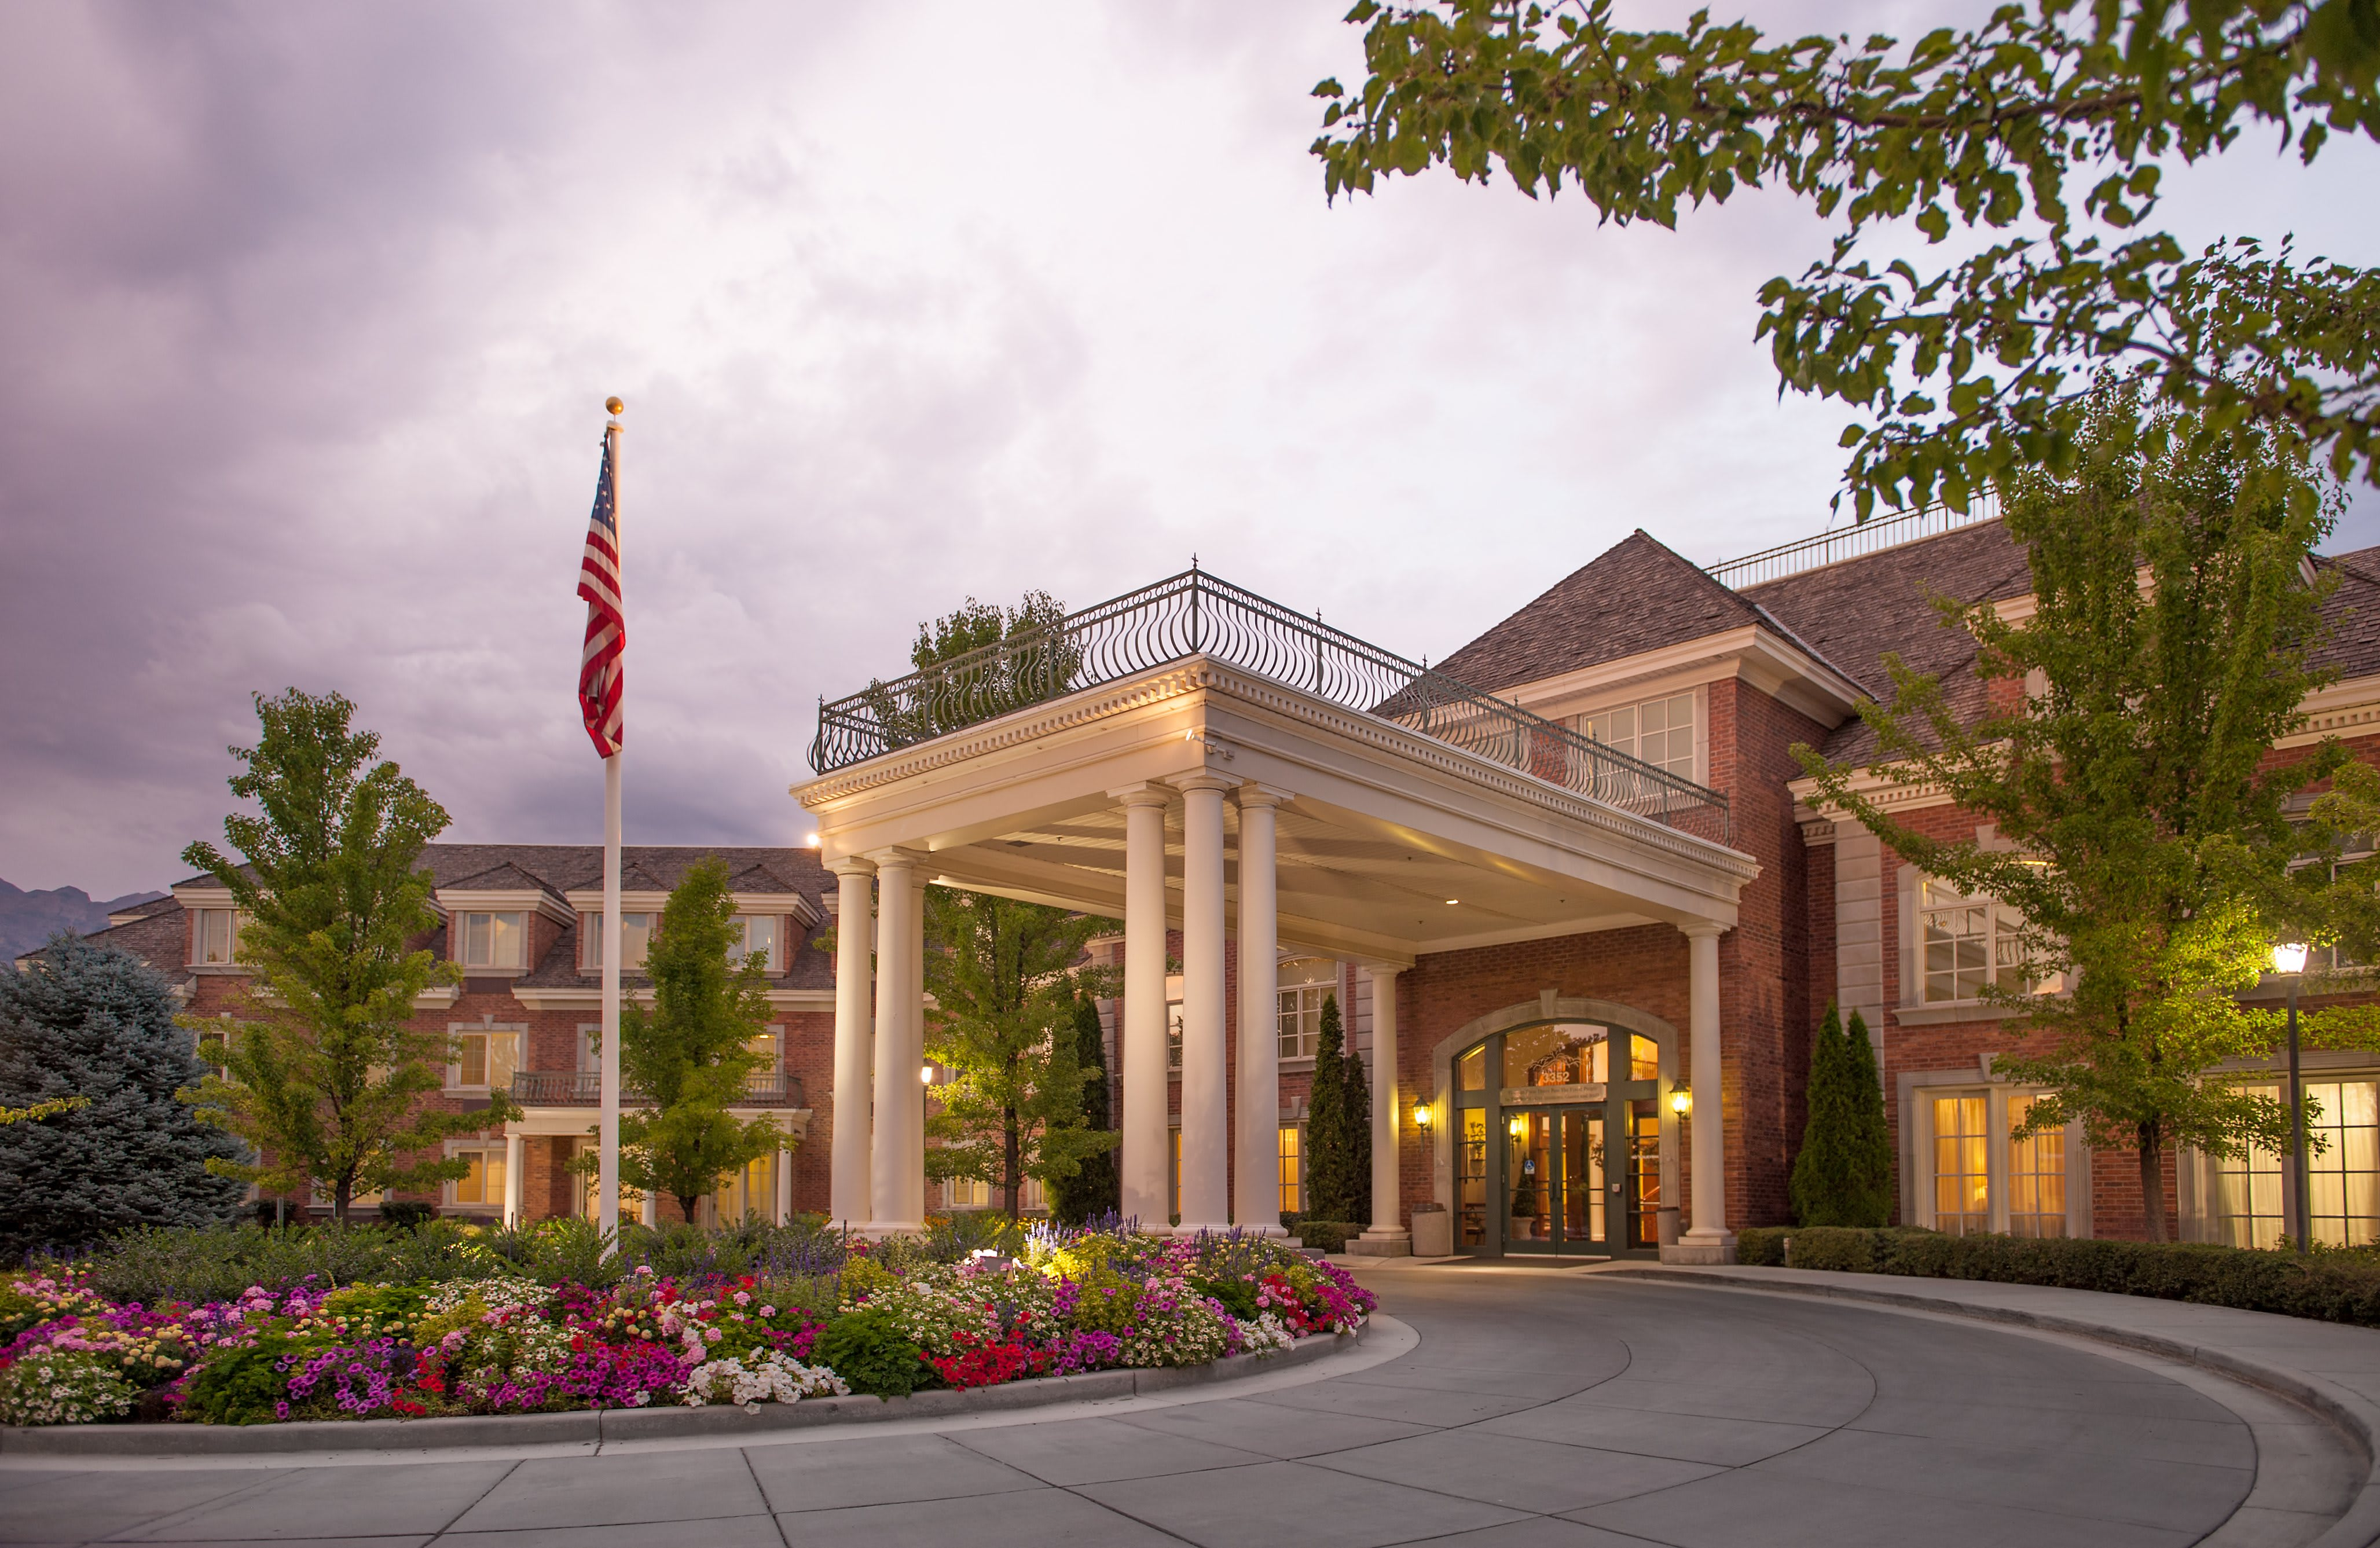 Photo 1 of Courtyard at Jamestown Assisted Living